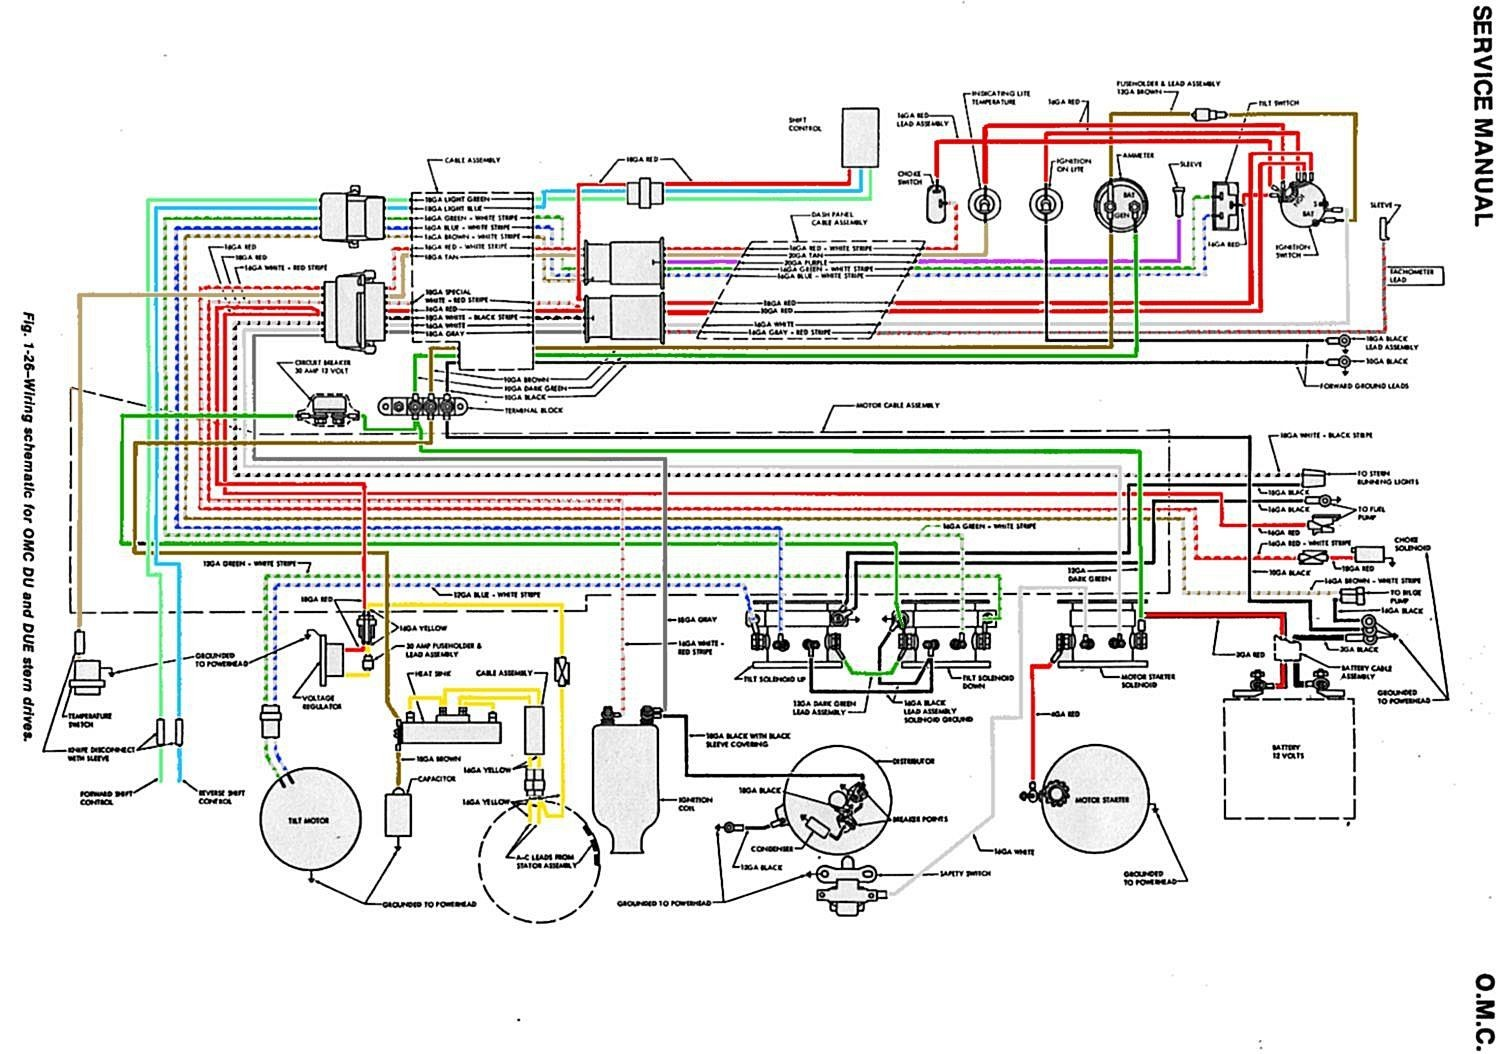 Mercury outboard wire harness schematic wiring diagram 1978 mercury outboard wiring diagram wiring diagram johnson wire harness 1966 mercury wiring diagram wiring diagram asfbconference2016 Image collections